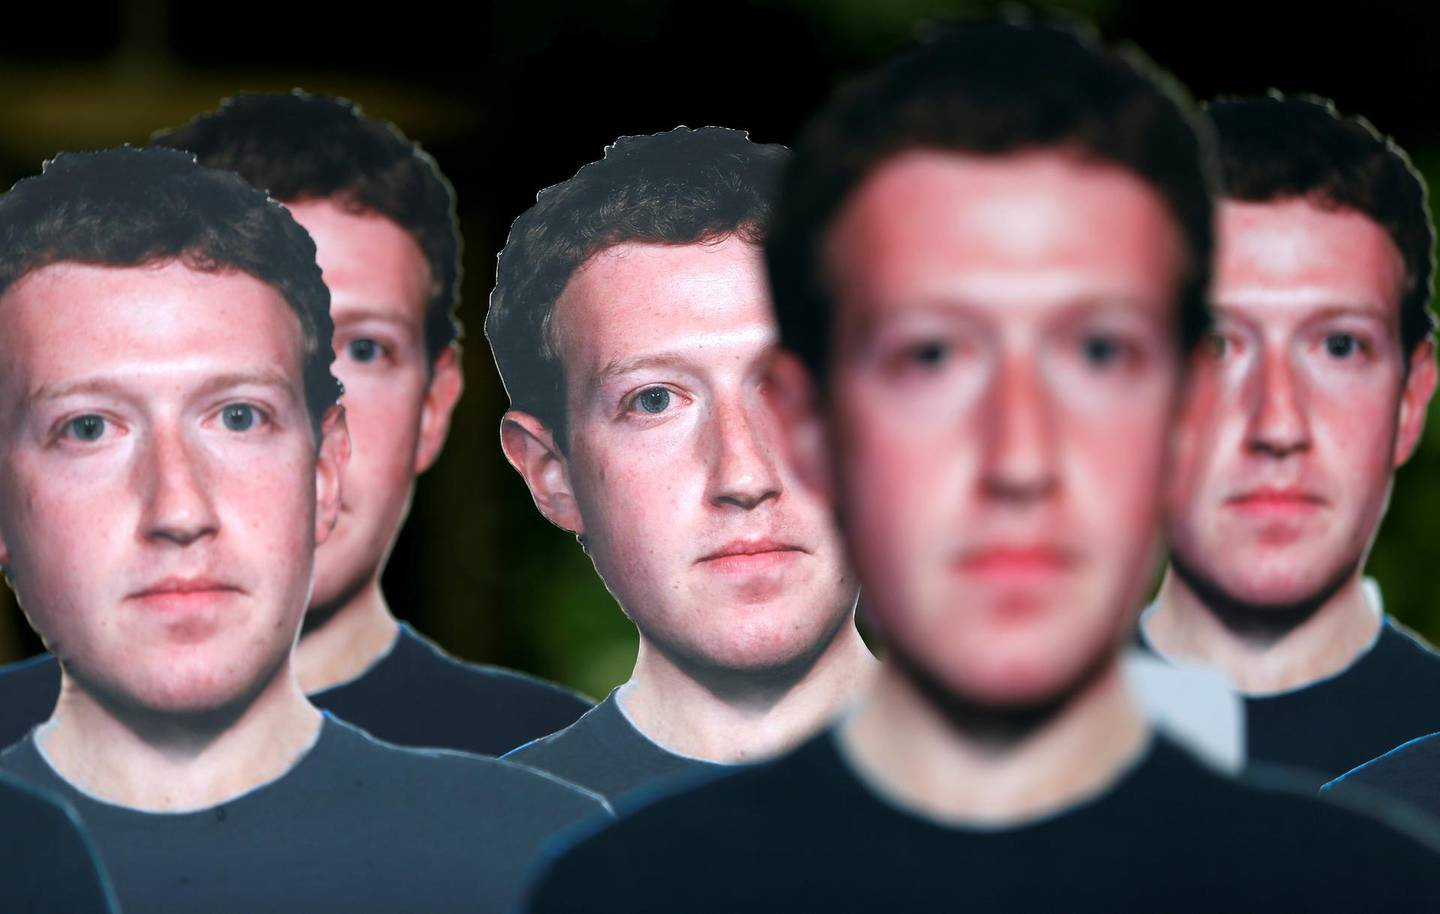 Cardboard cutouts depicting Facebook CEO Mark Zuckerberg are pictured during a demonstration ahead of a meeting between Zuckerberg and leaders of the European Parliament in Brussels, Belgium May 22, 2018. REUTERS/Francois Lenoir     TPX IMAGES OF THE DAY